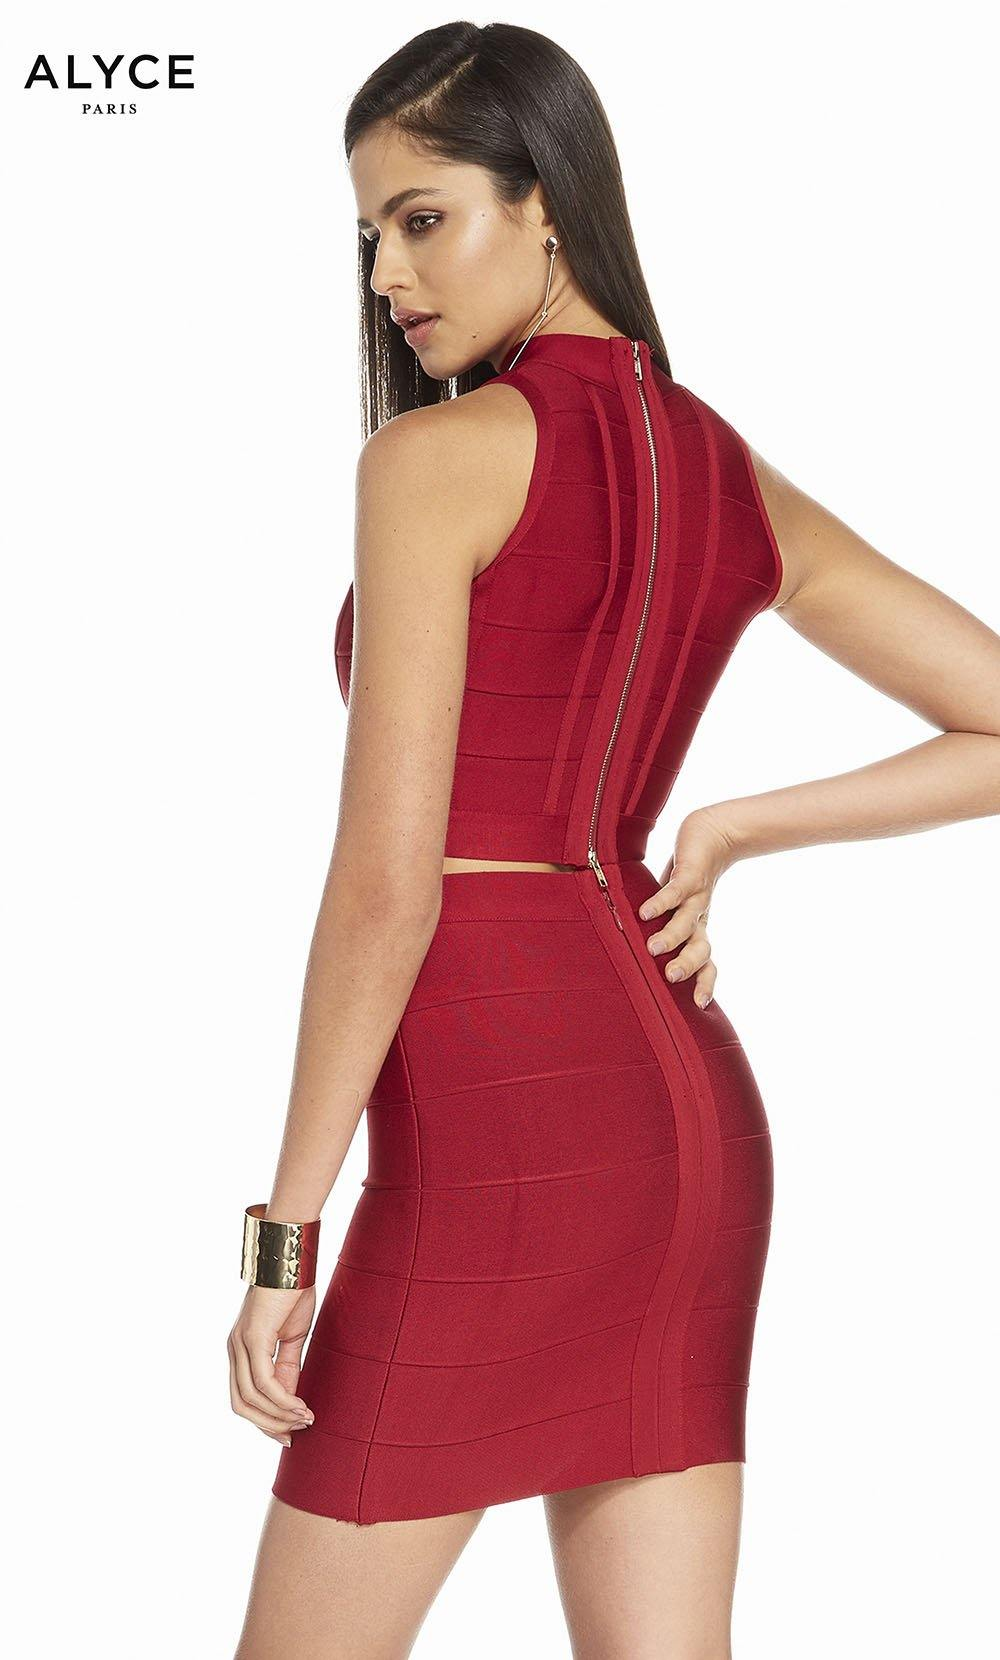 Alyce 4111 short two piece bandage jersey bodycon dress with an enclosed back